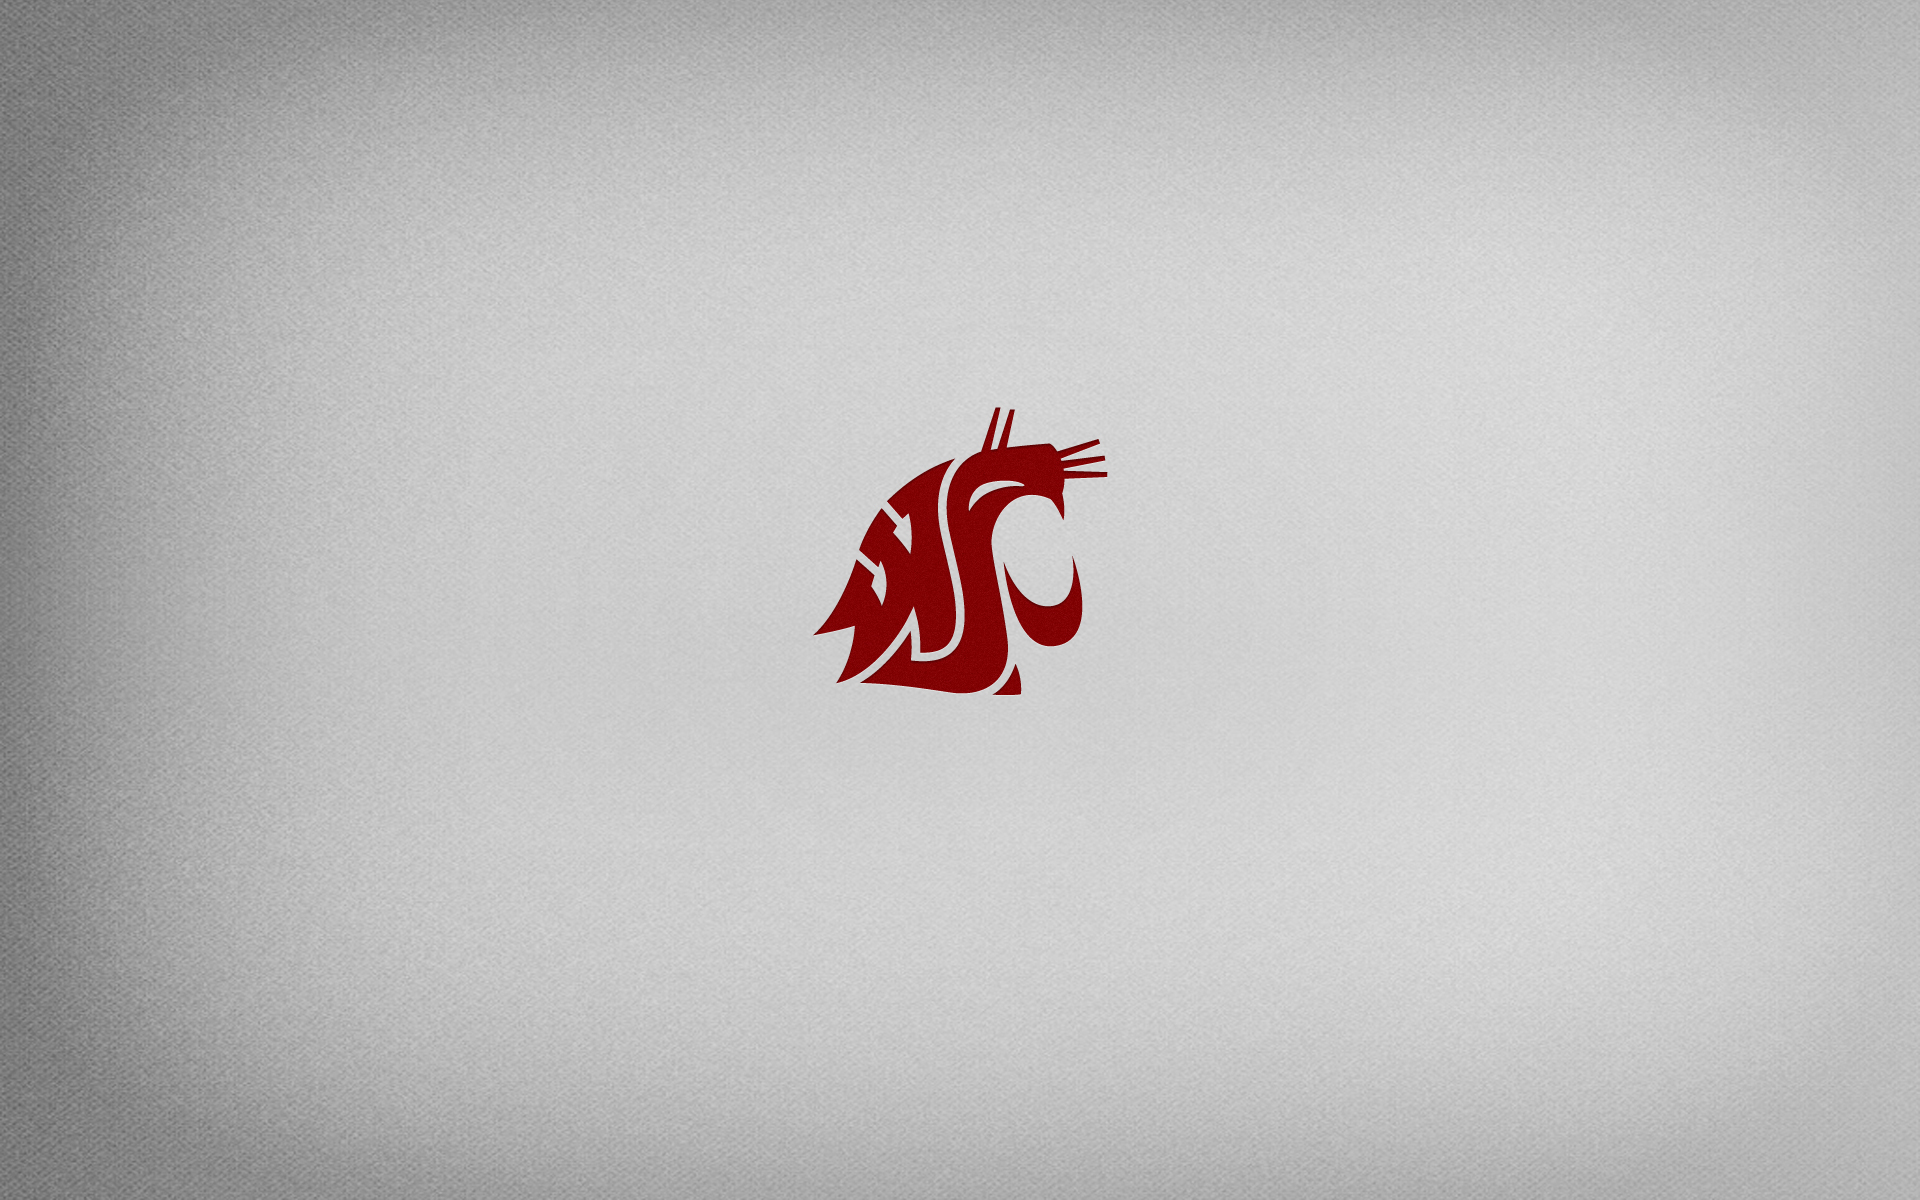 Wsu Cougar Wallpaper